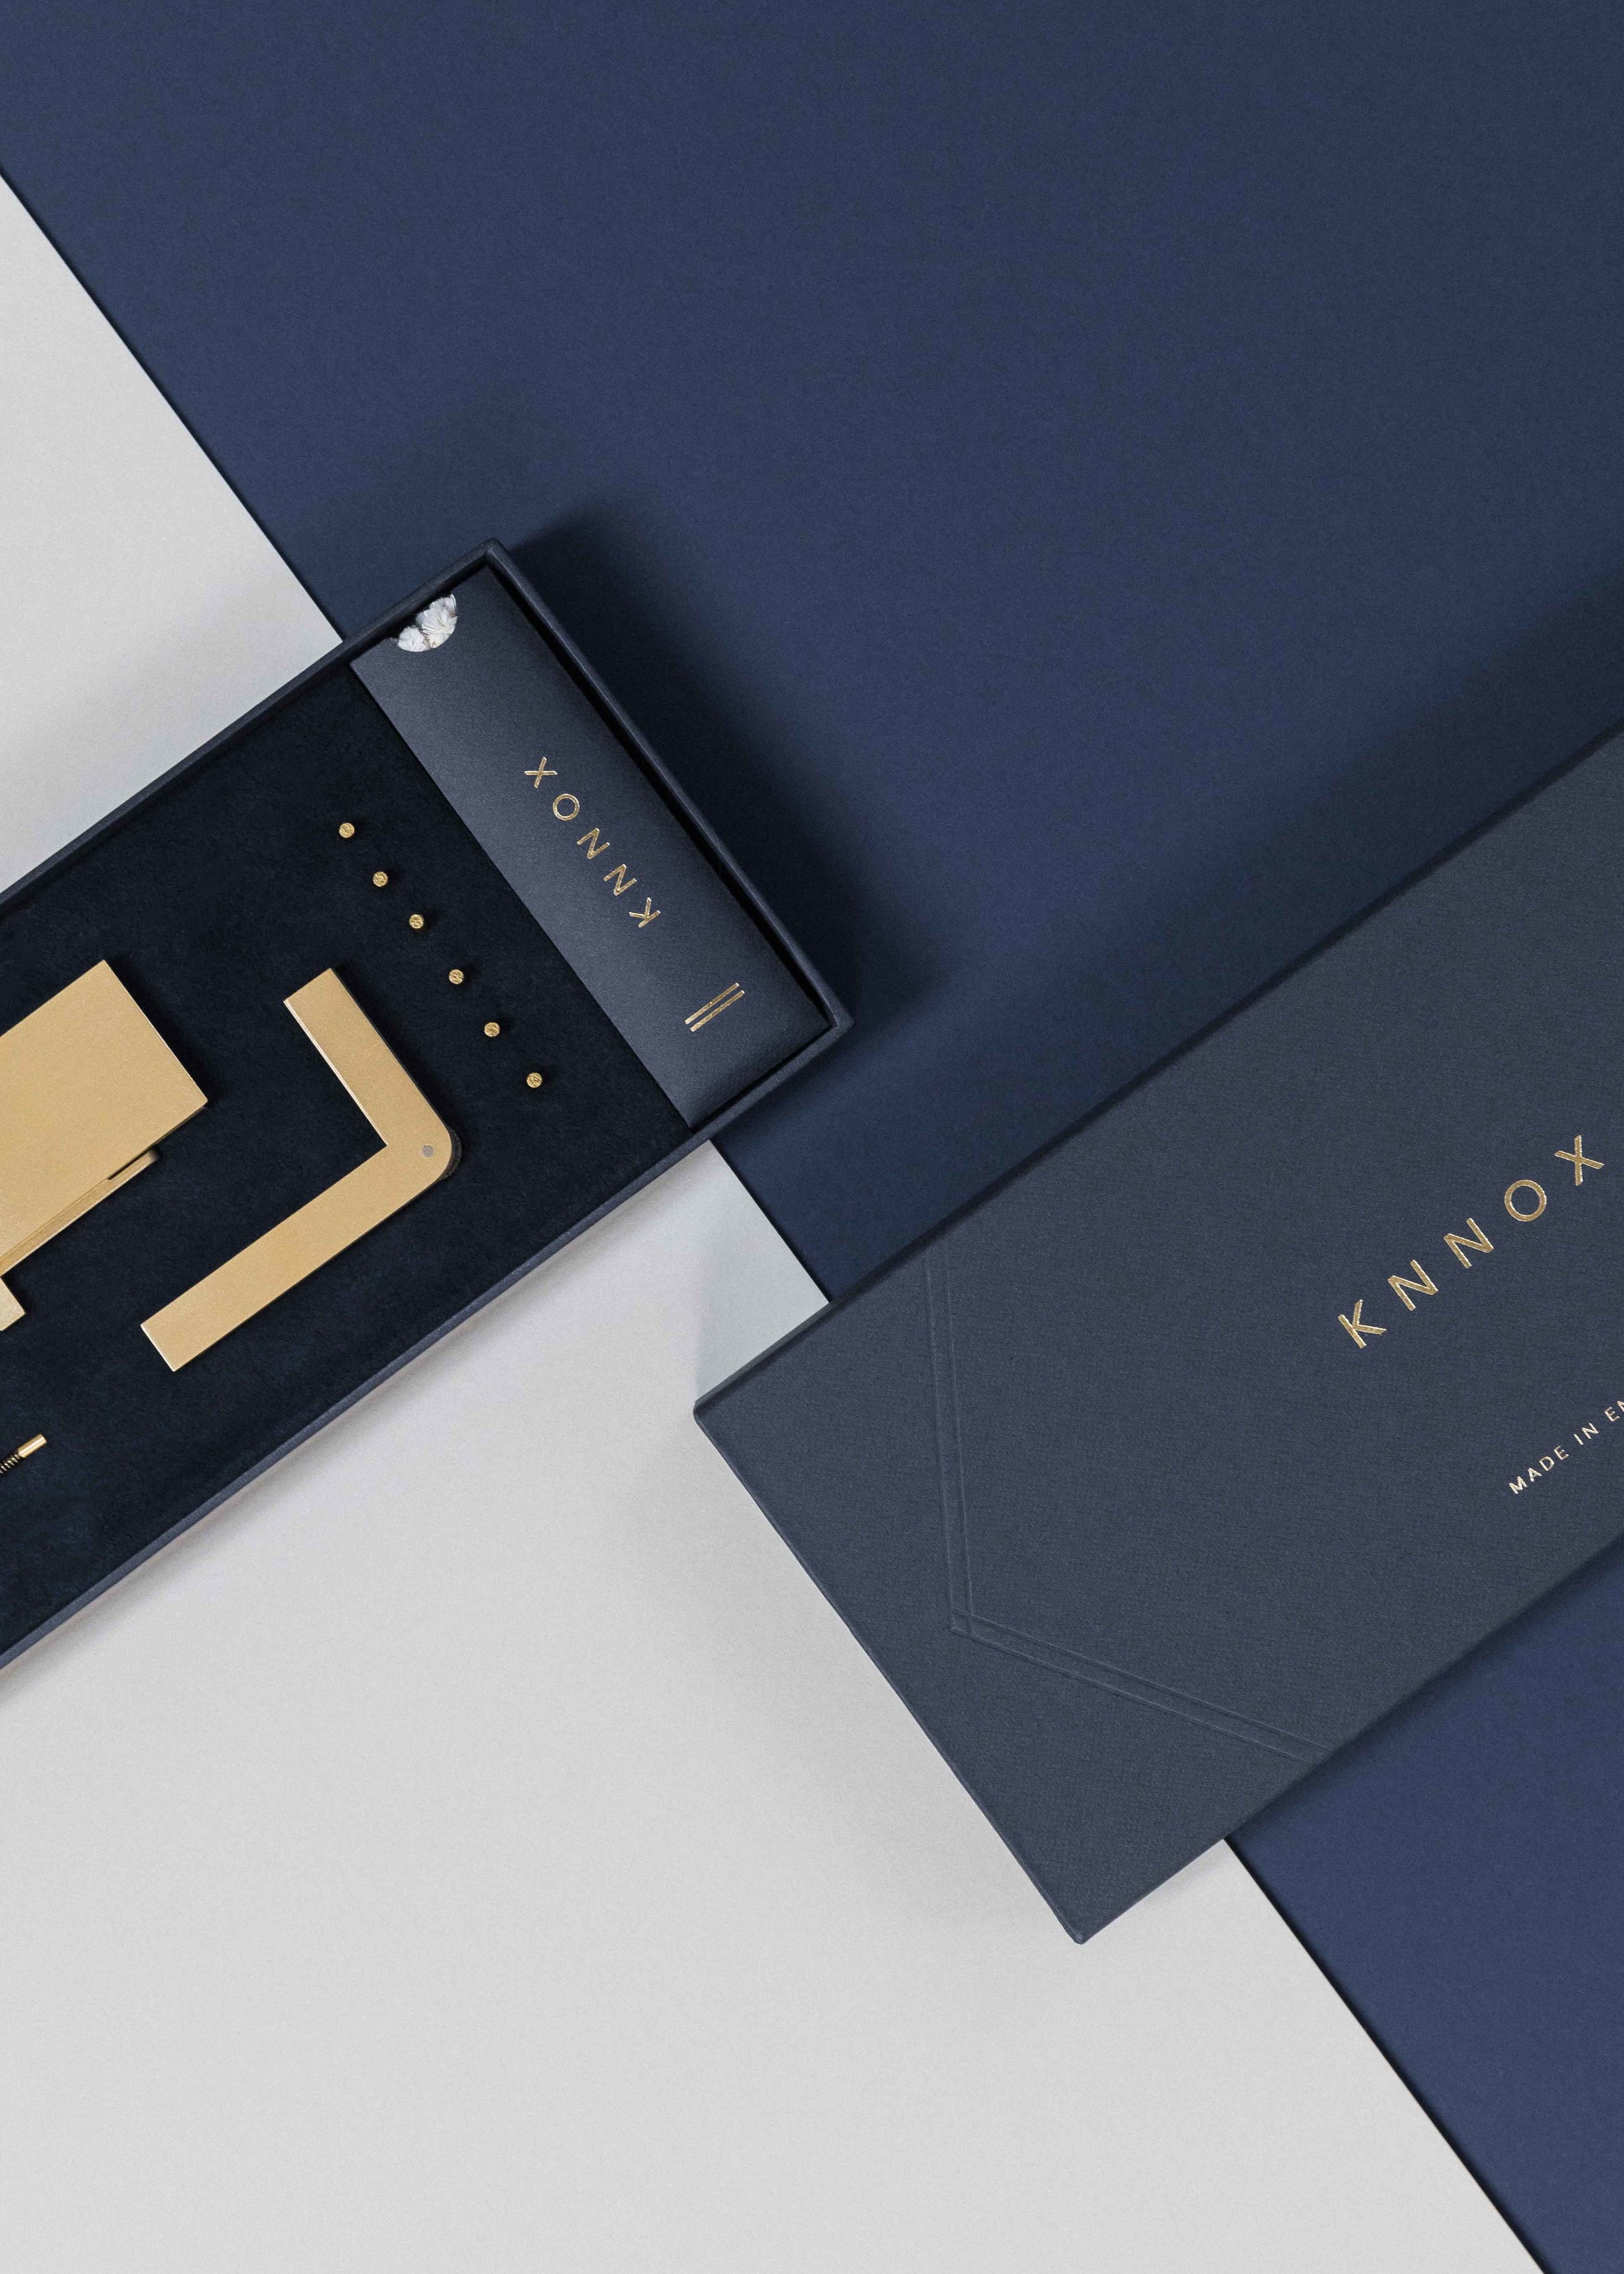 Minimal and Luxurious Packaging Design for the KNNOX Lighter / World Brand & Packaging Design Society